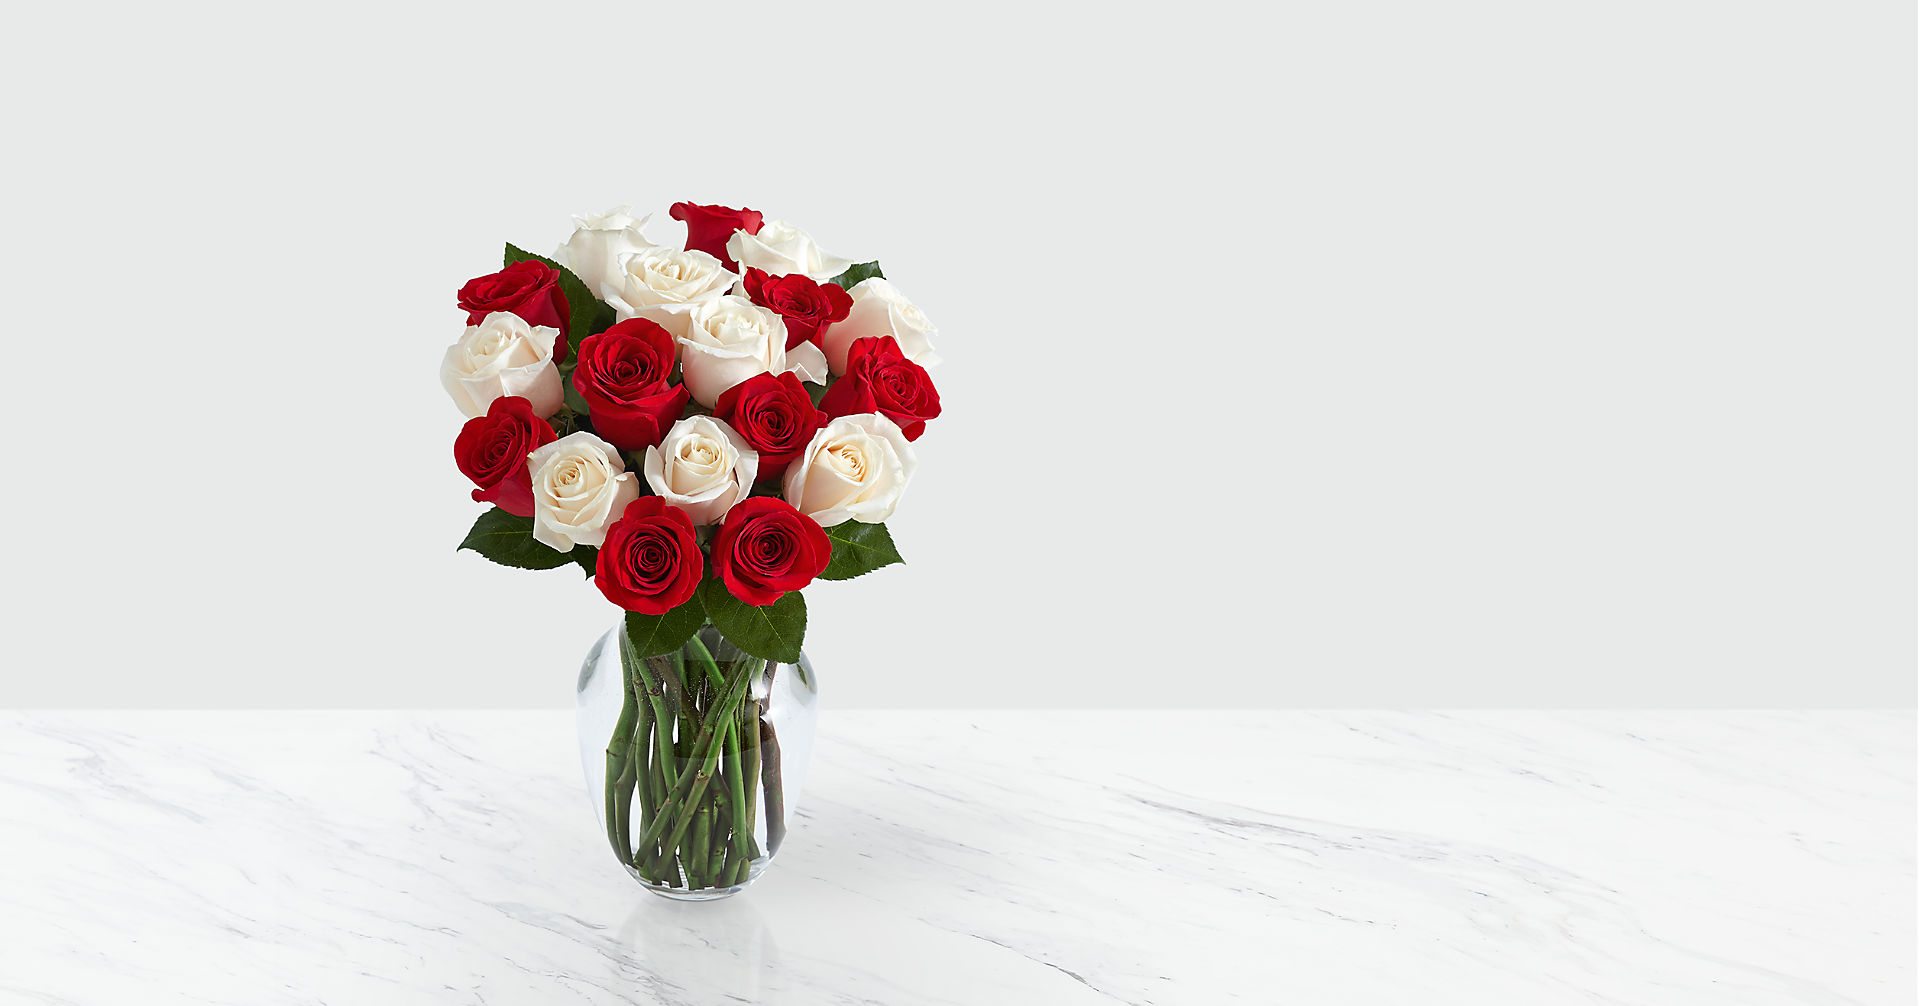 Candy Cane Roses - Image 1 Of 2